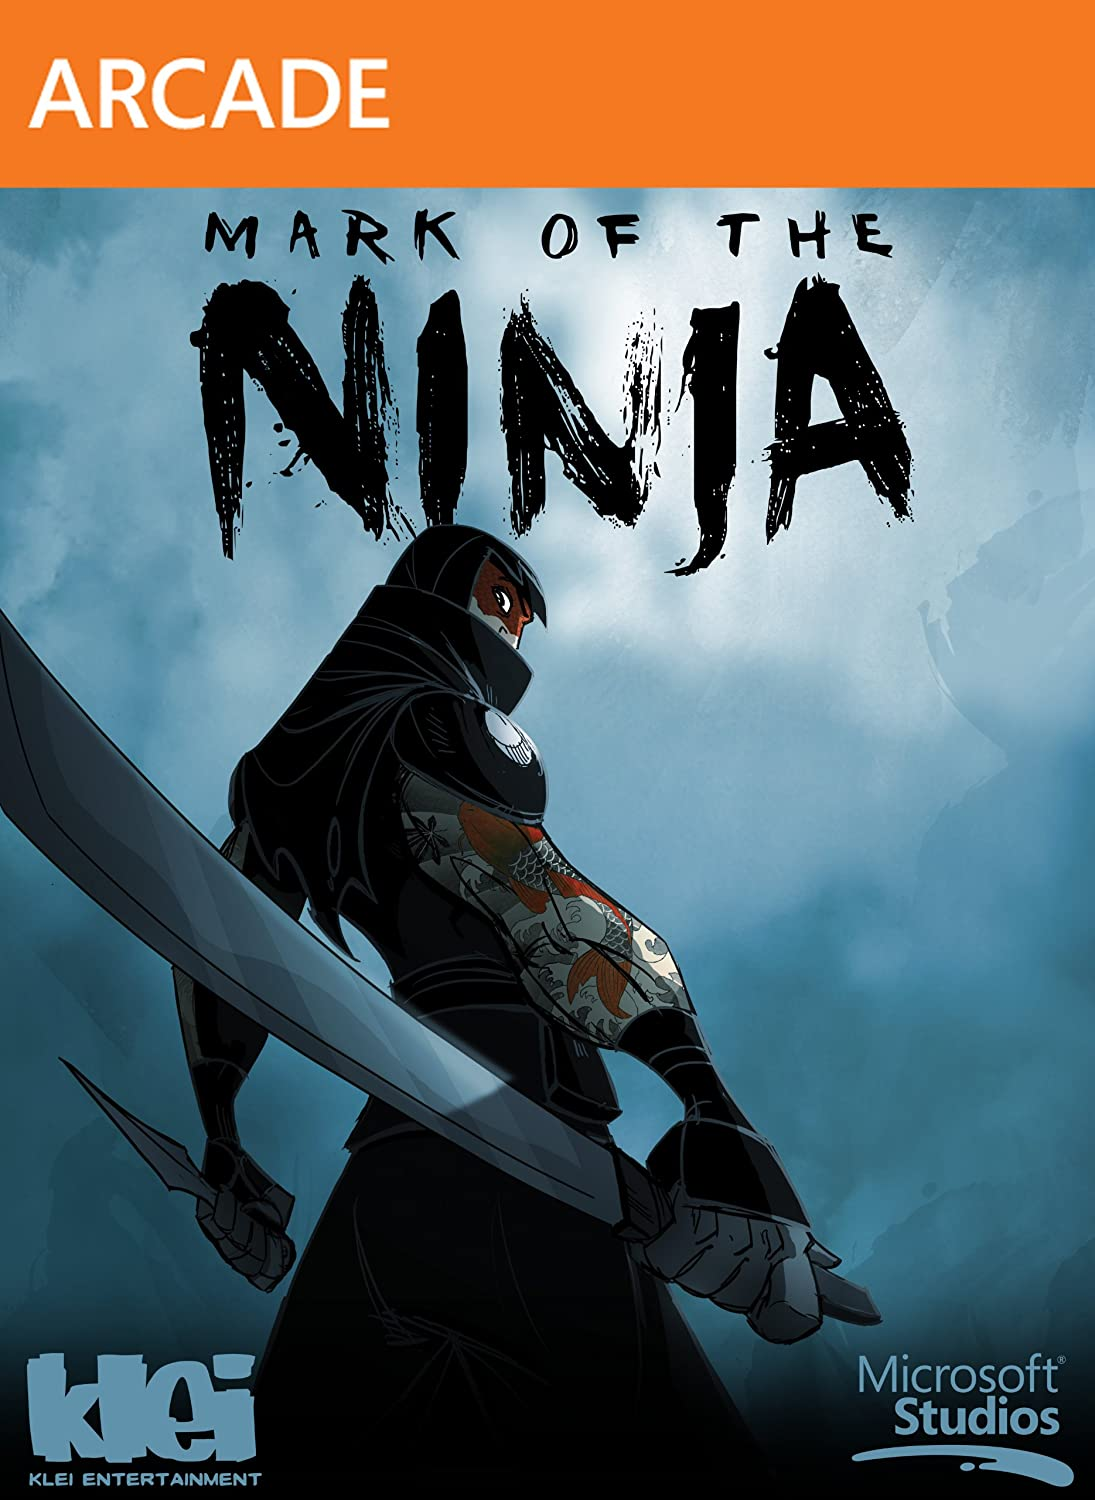 Amazon.com: Mark of the Ninja [Online Game Code]: Video Games